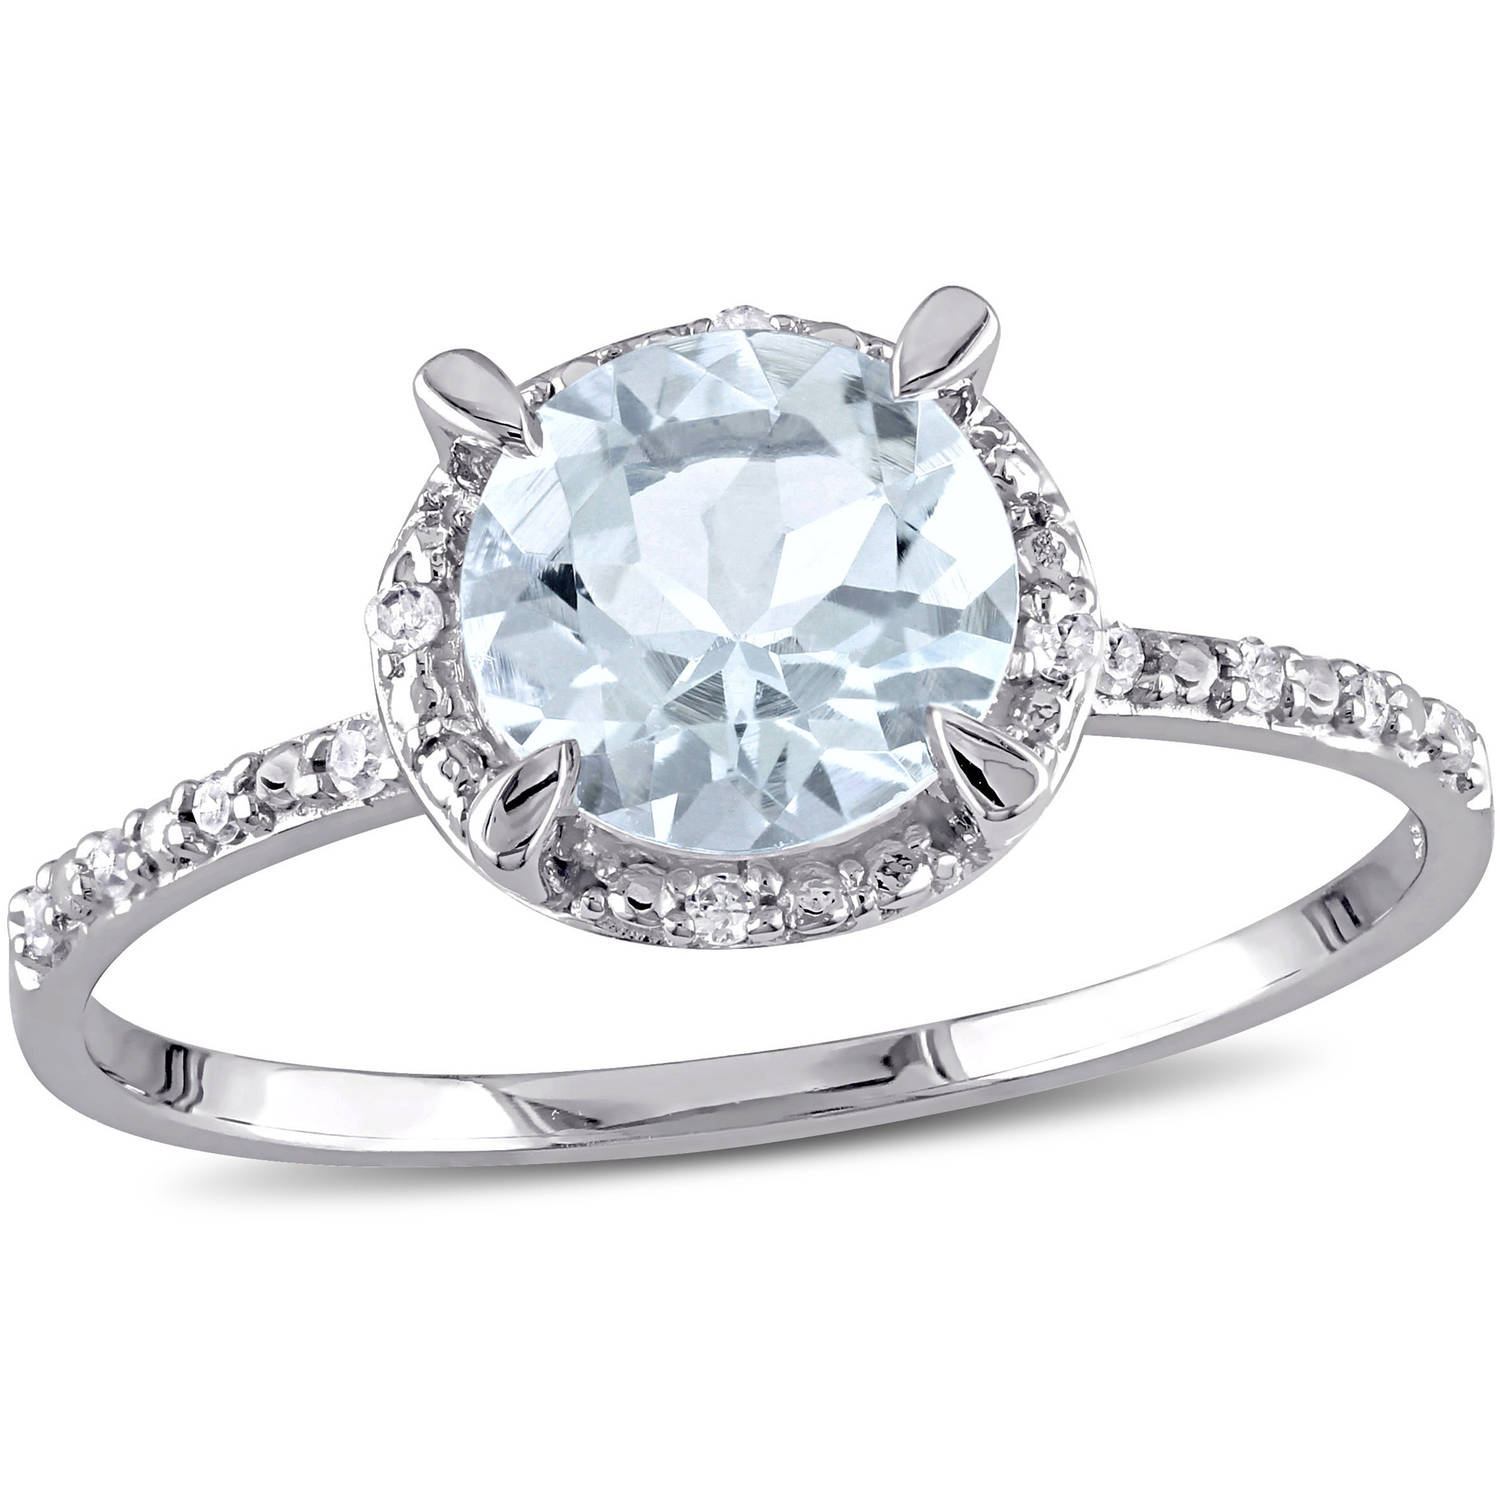 Tangelo 1-1 7 Carat T.G.W. Aquamarine and Diamond-Accent 10kt White Gold Halo Cocktail Ring by Tangelo